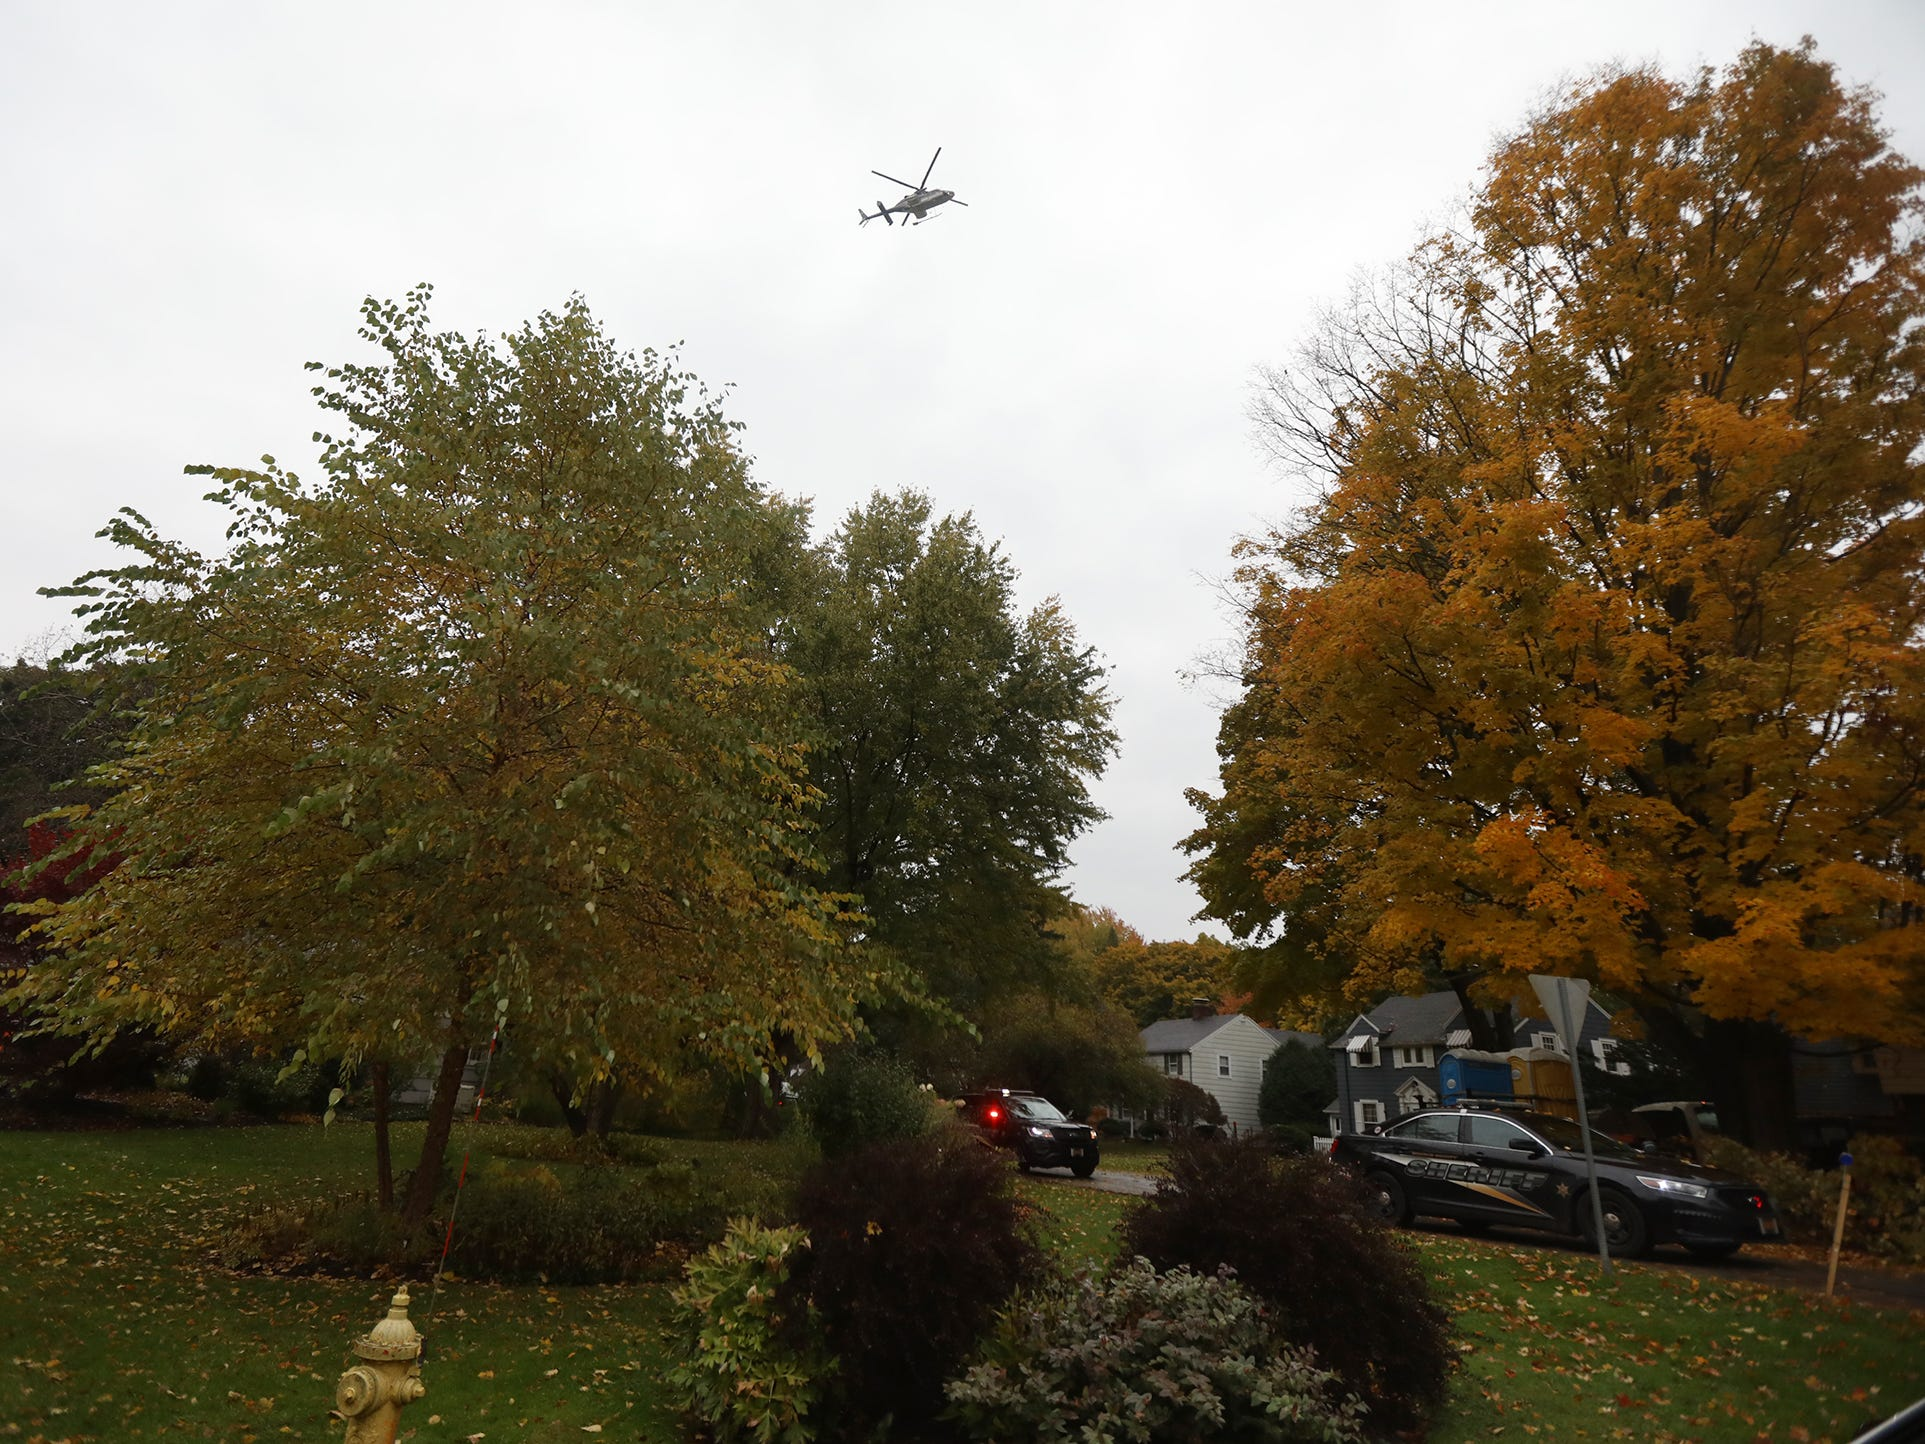 A New York State Police helicopter is used in the homicide investigation on Collingsworth Drive in Penfield.